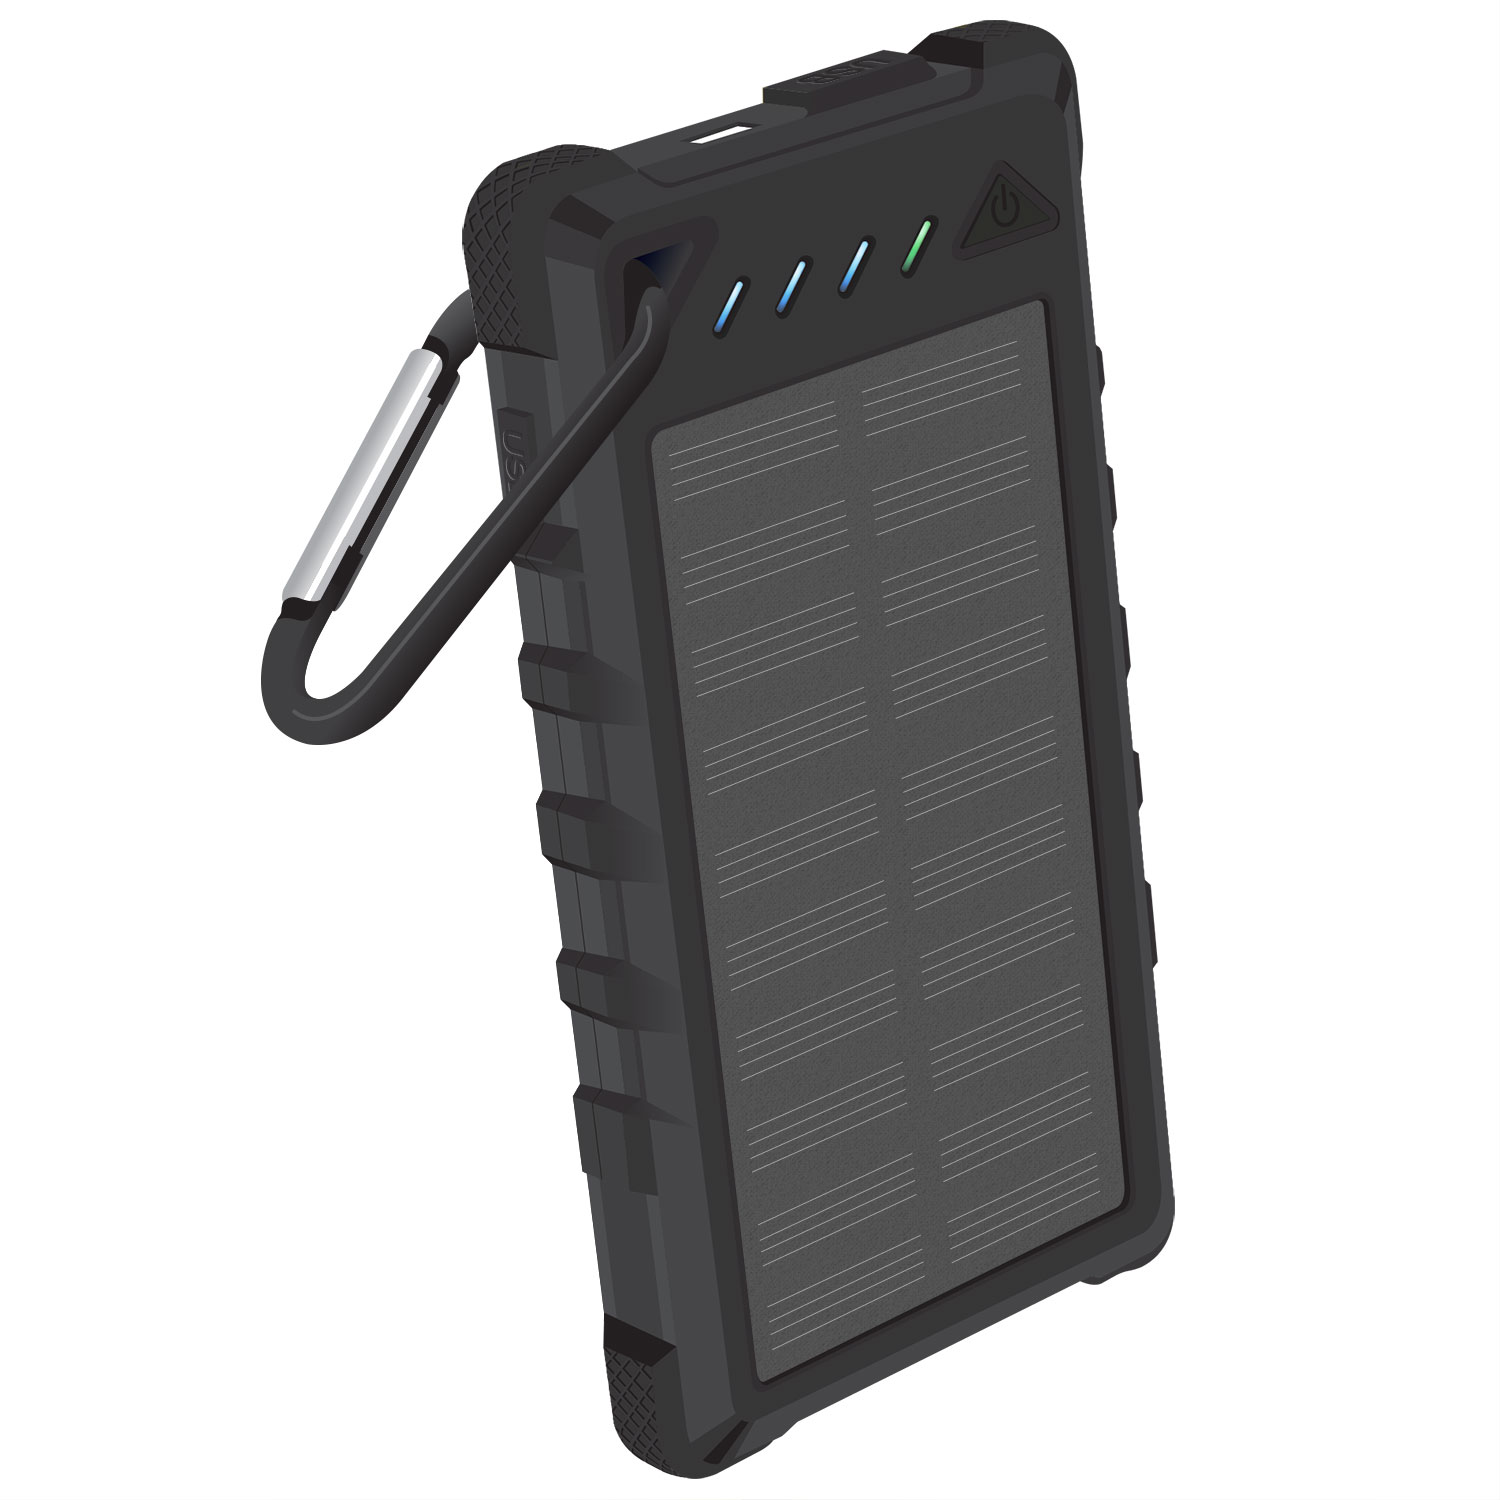 Alcatel Go Flip V Solar Powered Portable PowerBank Black